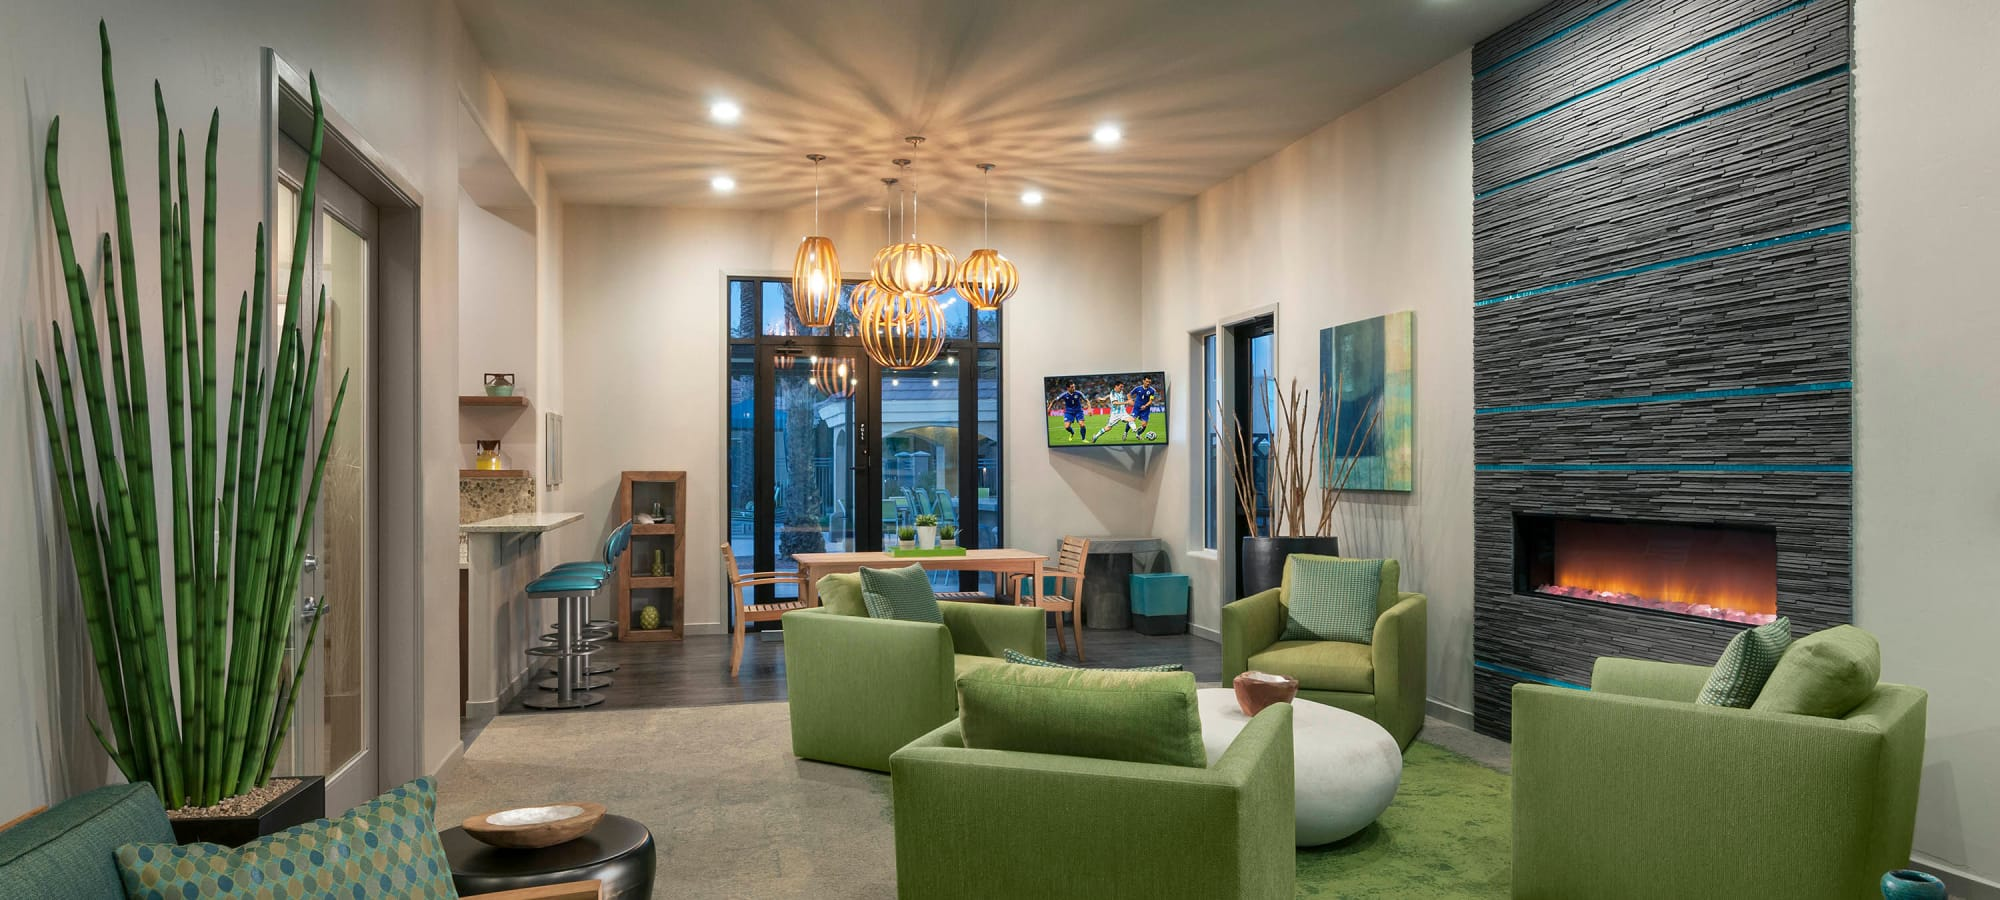 Comfortable seating in front of the fireplace in the resident clubhouse at Mira Santi in Chandler, Arizona